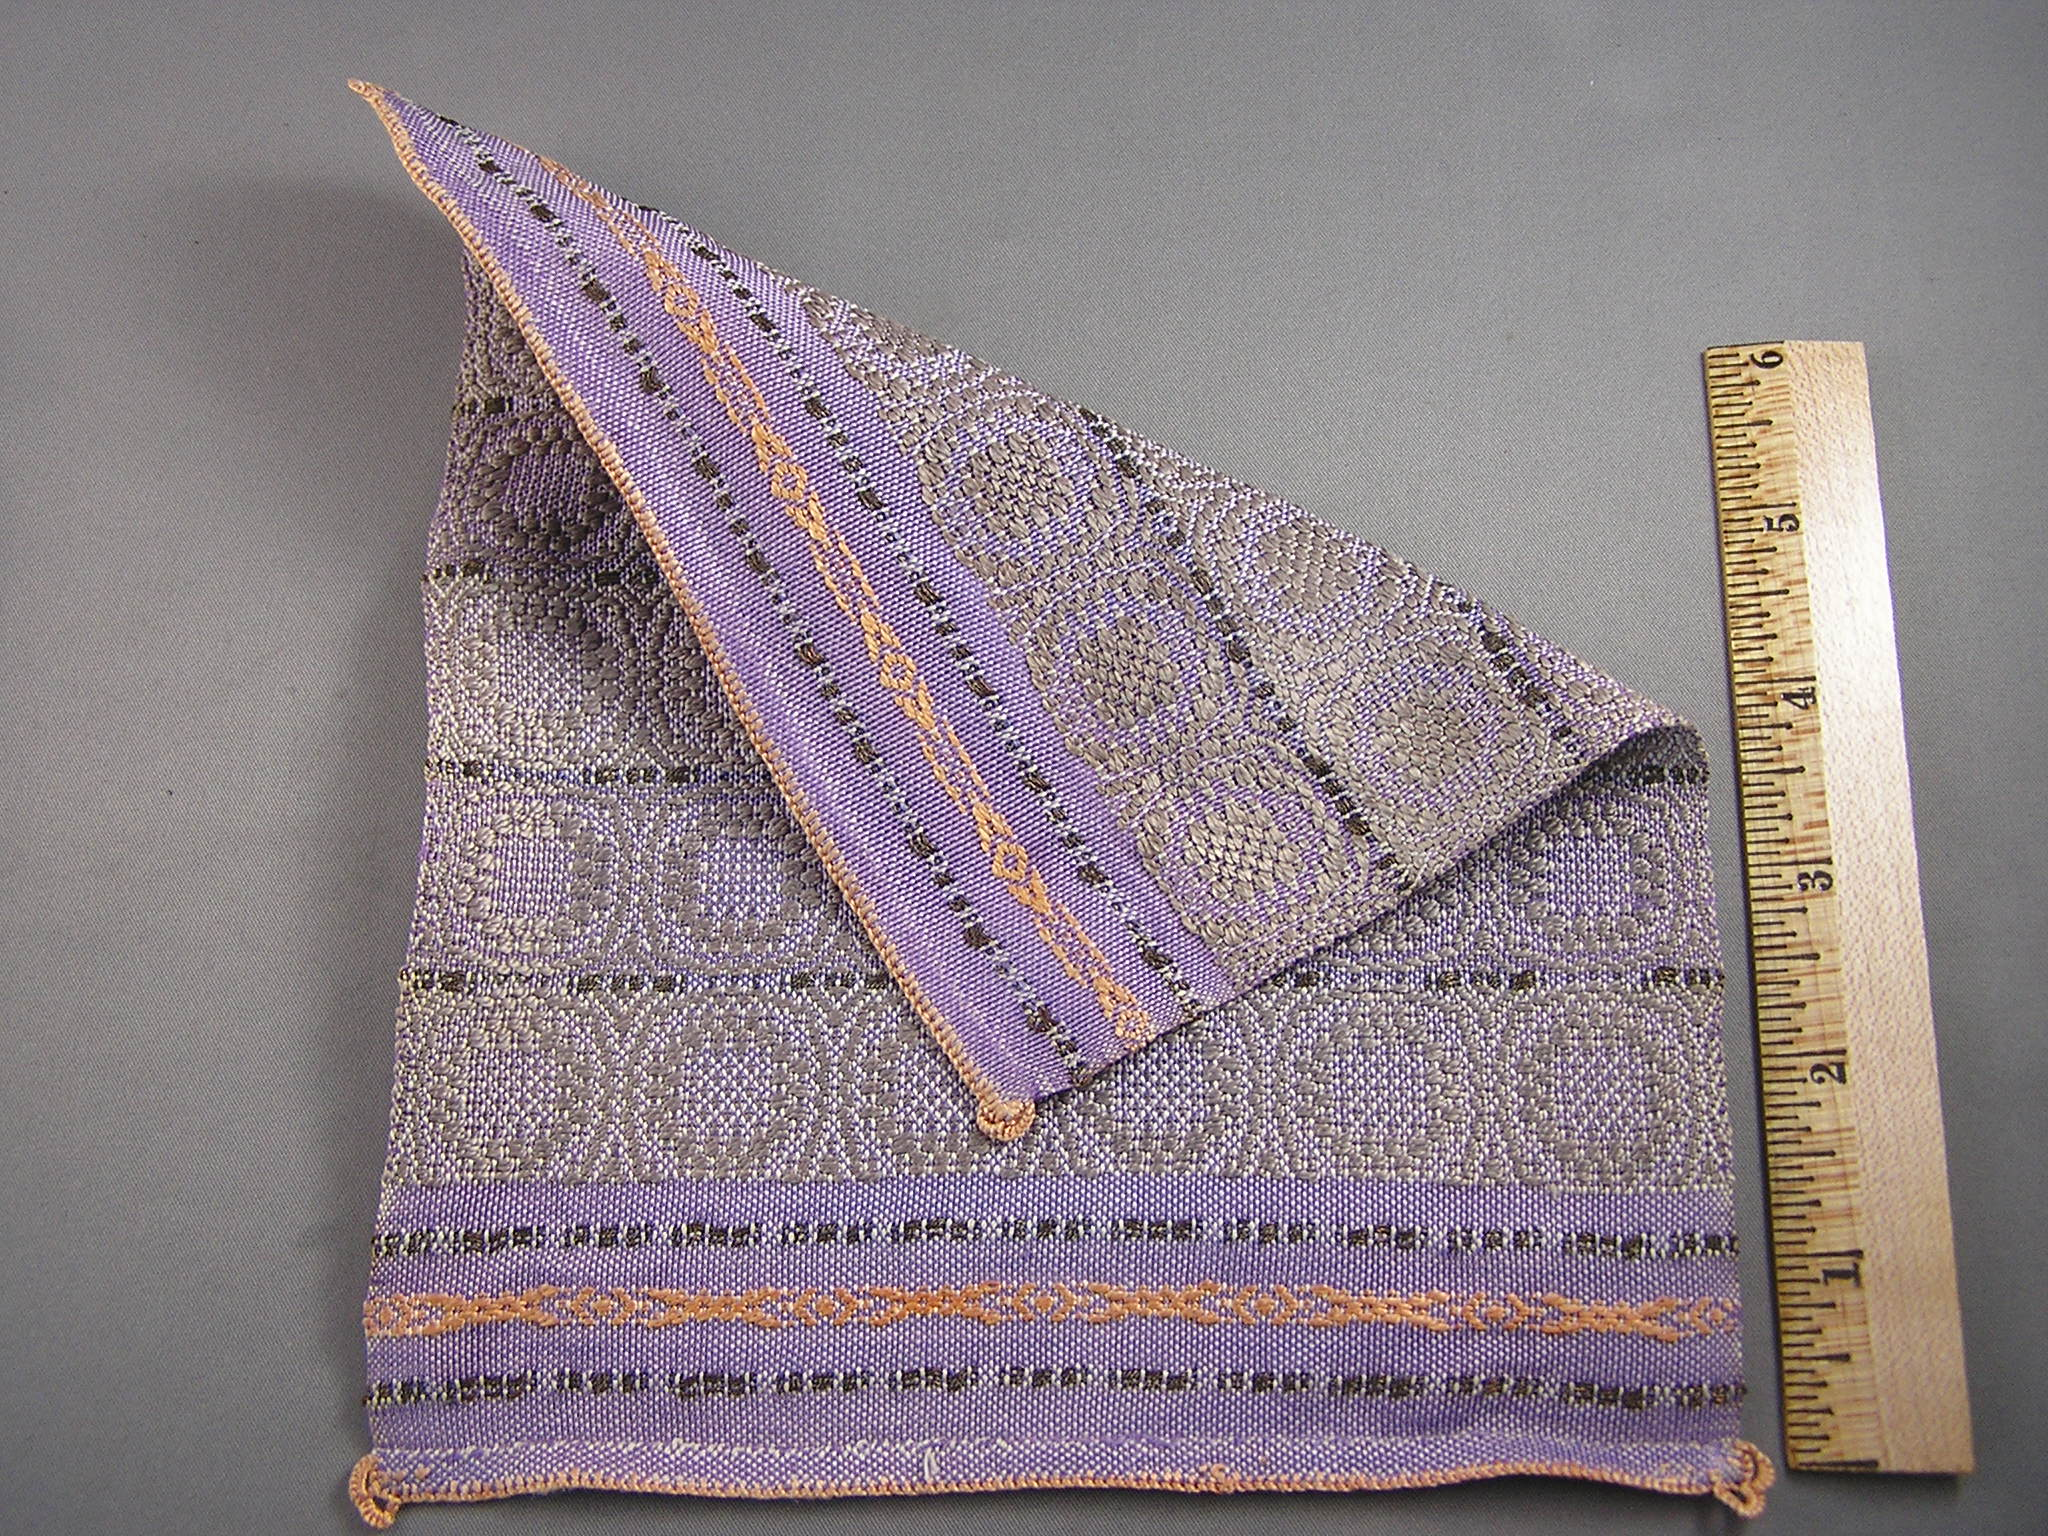 Hand Woven Bed Spread or Carpet, Shades of Lavender - Click Image to Close